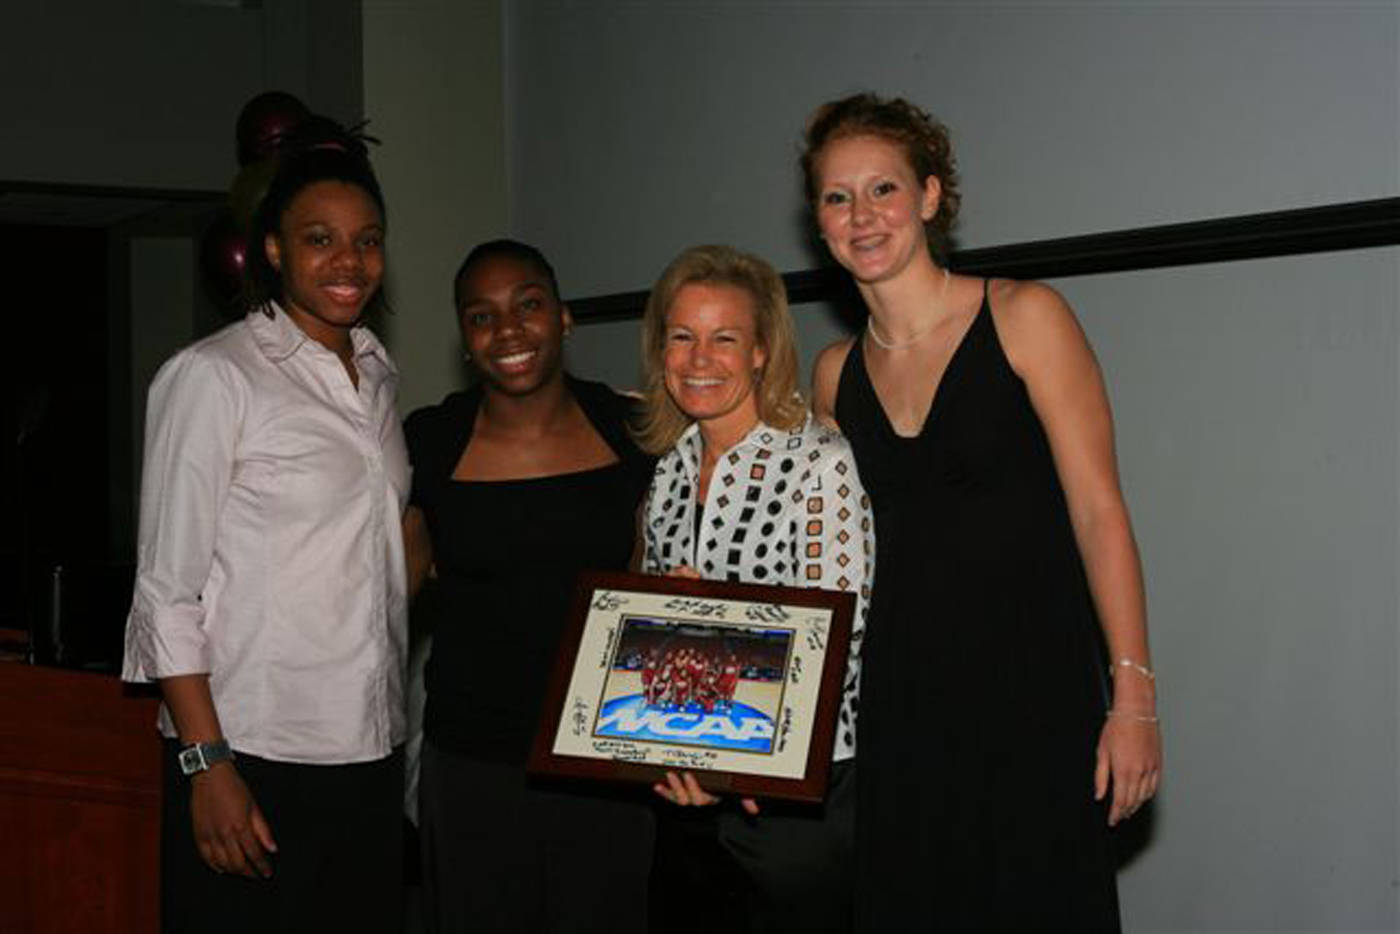 Captains' Award Winners Tanae Davis-Cain, Shante Williams and Mara Freshour